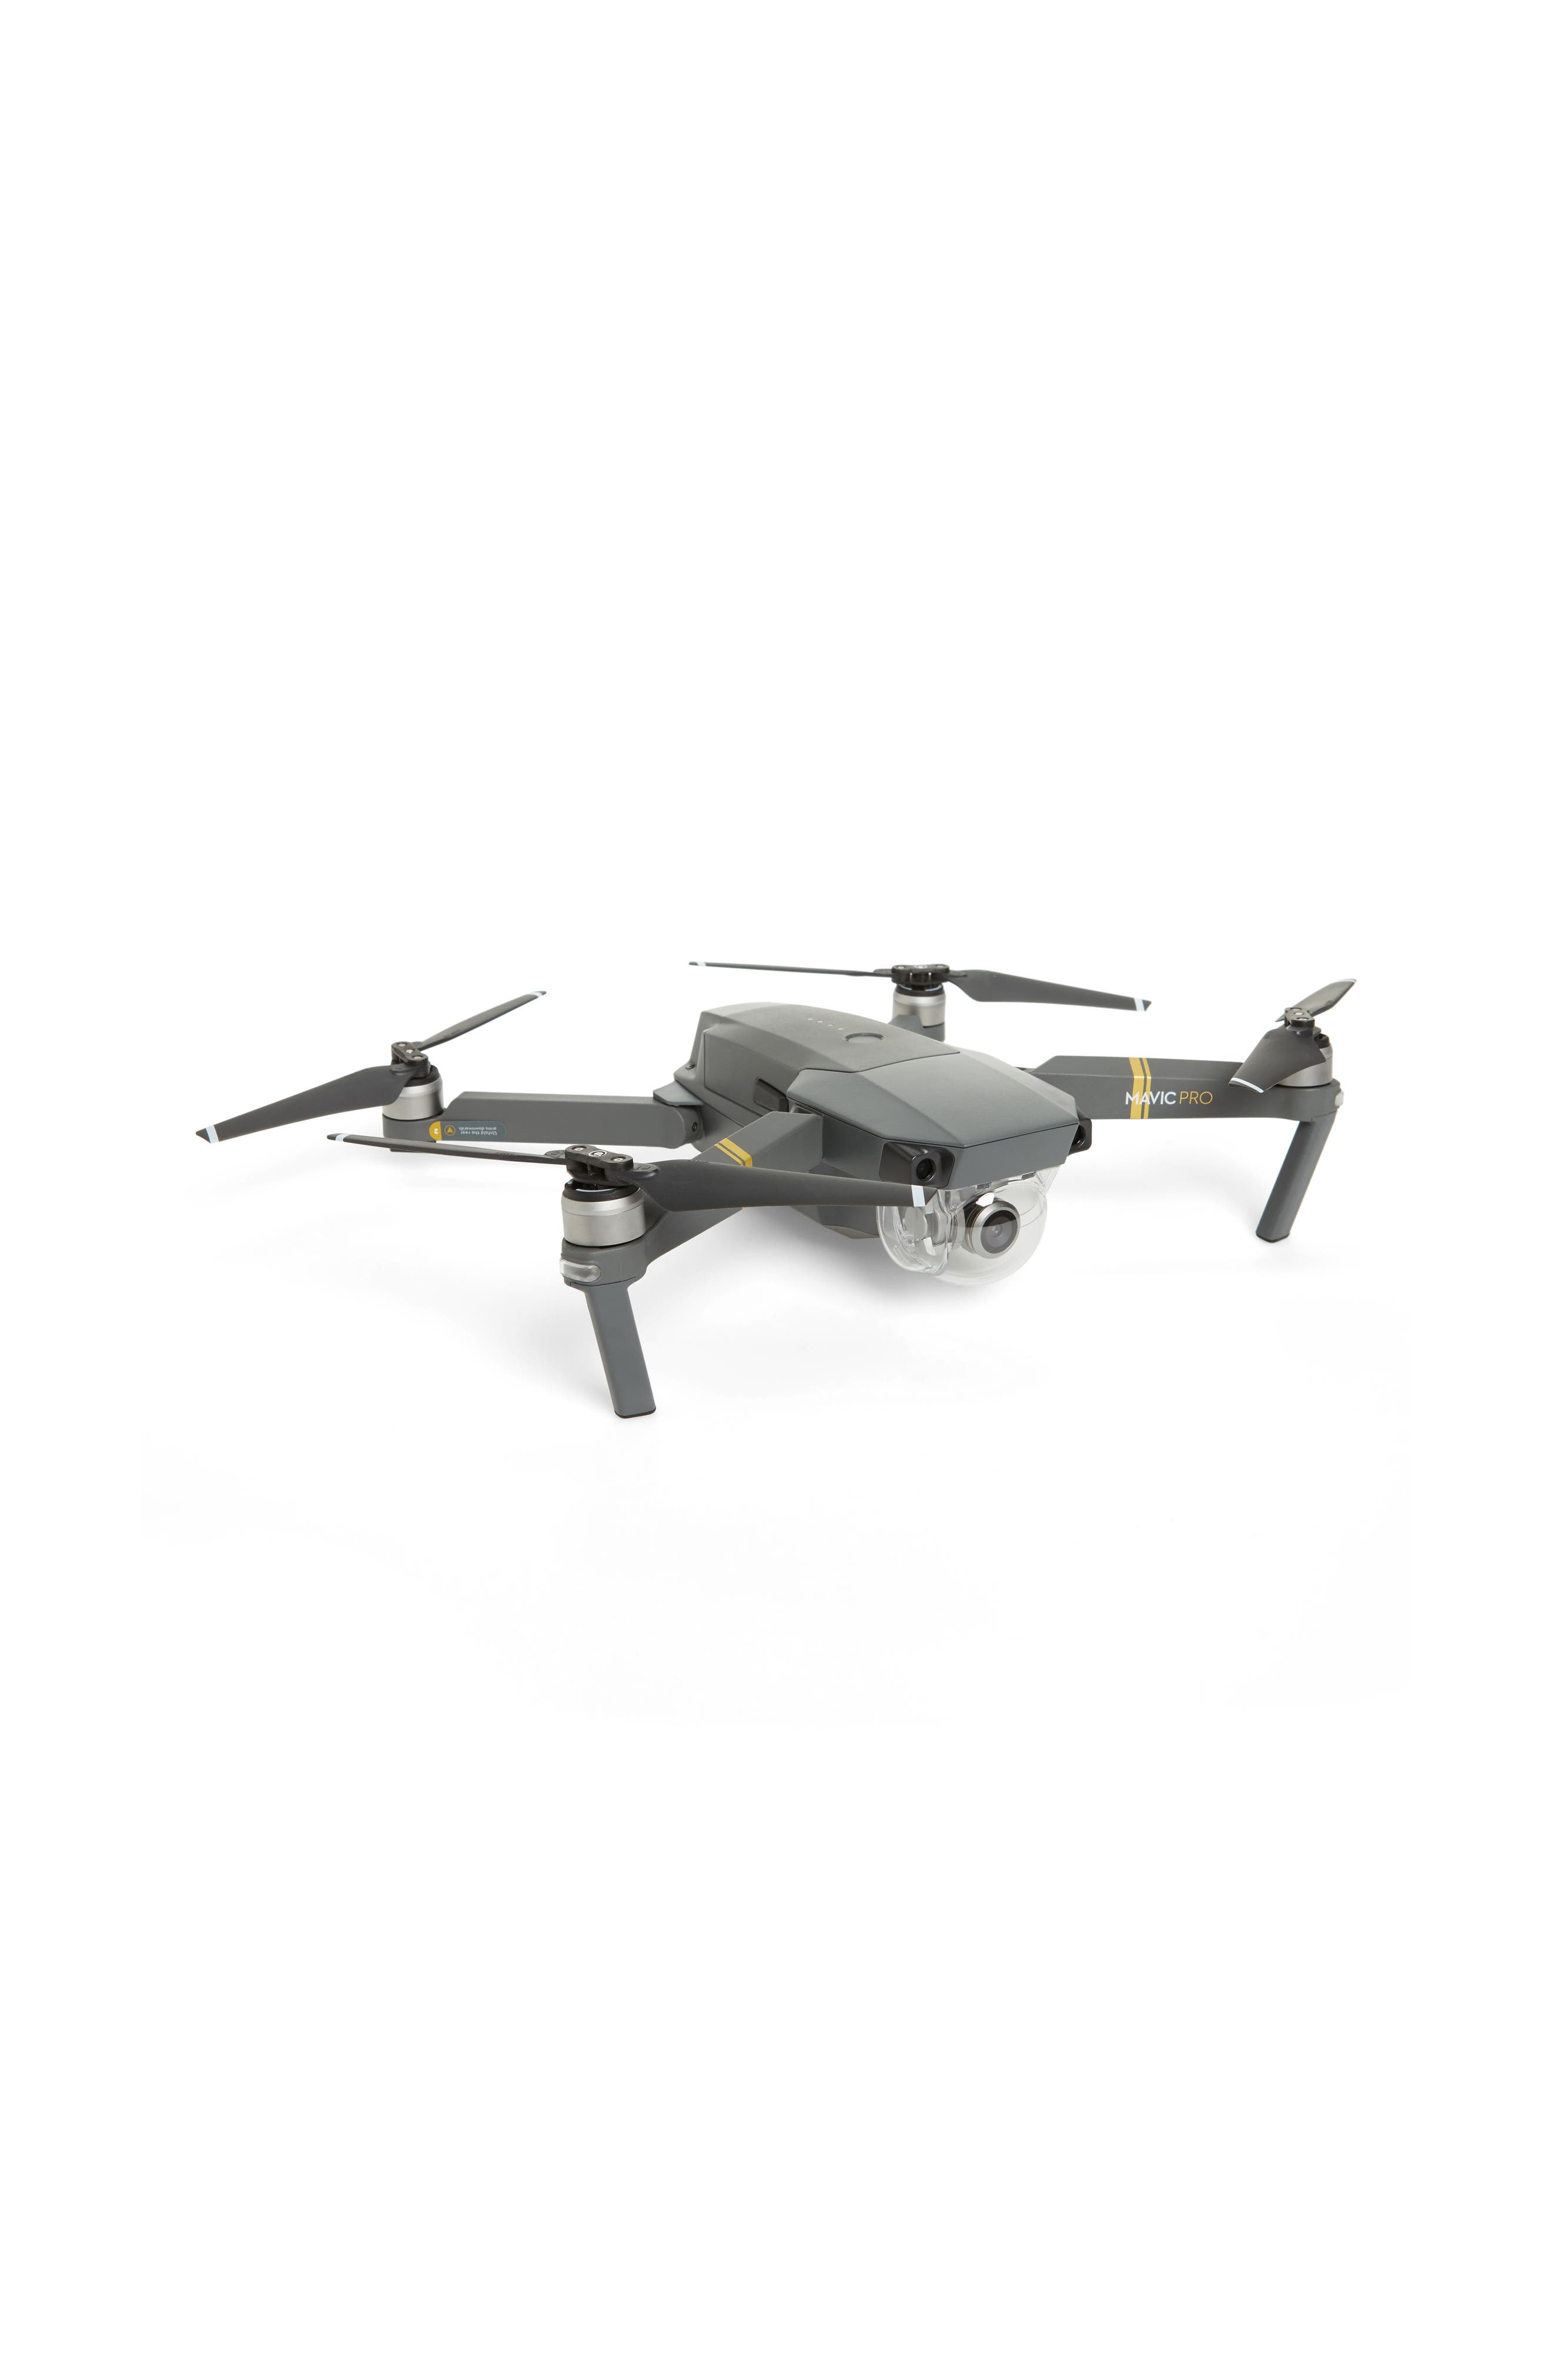 Mavic Pro Fly More Combo Foldable Flying Quadcopter,                         Main,                         color, 020